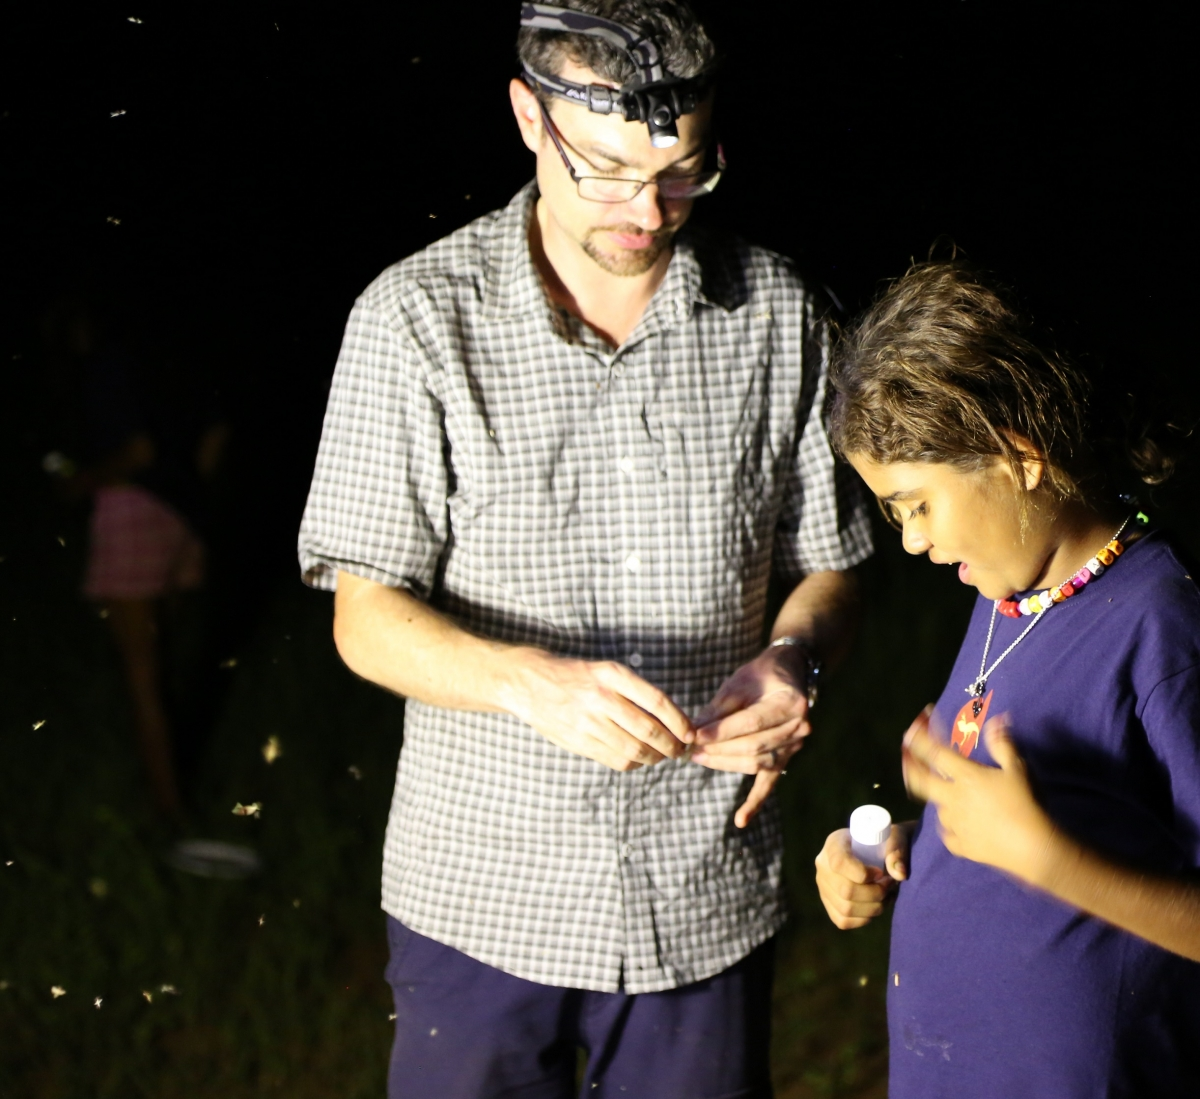 Collecting flying insects at Quinkan community day (image credit S. Nally)